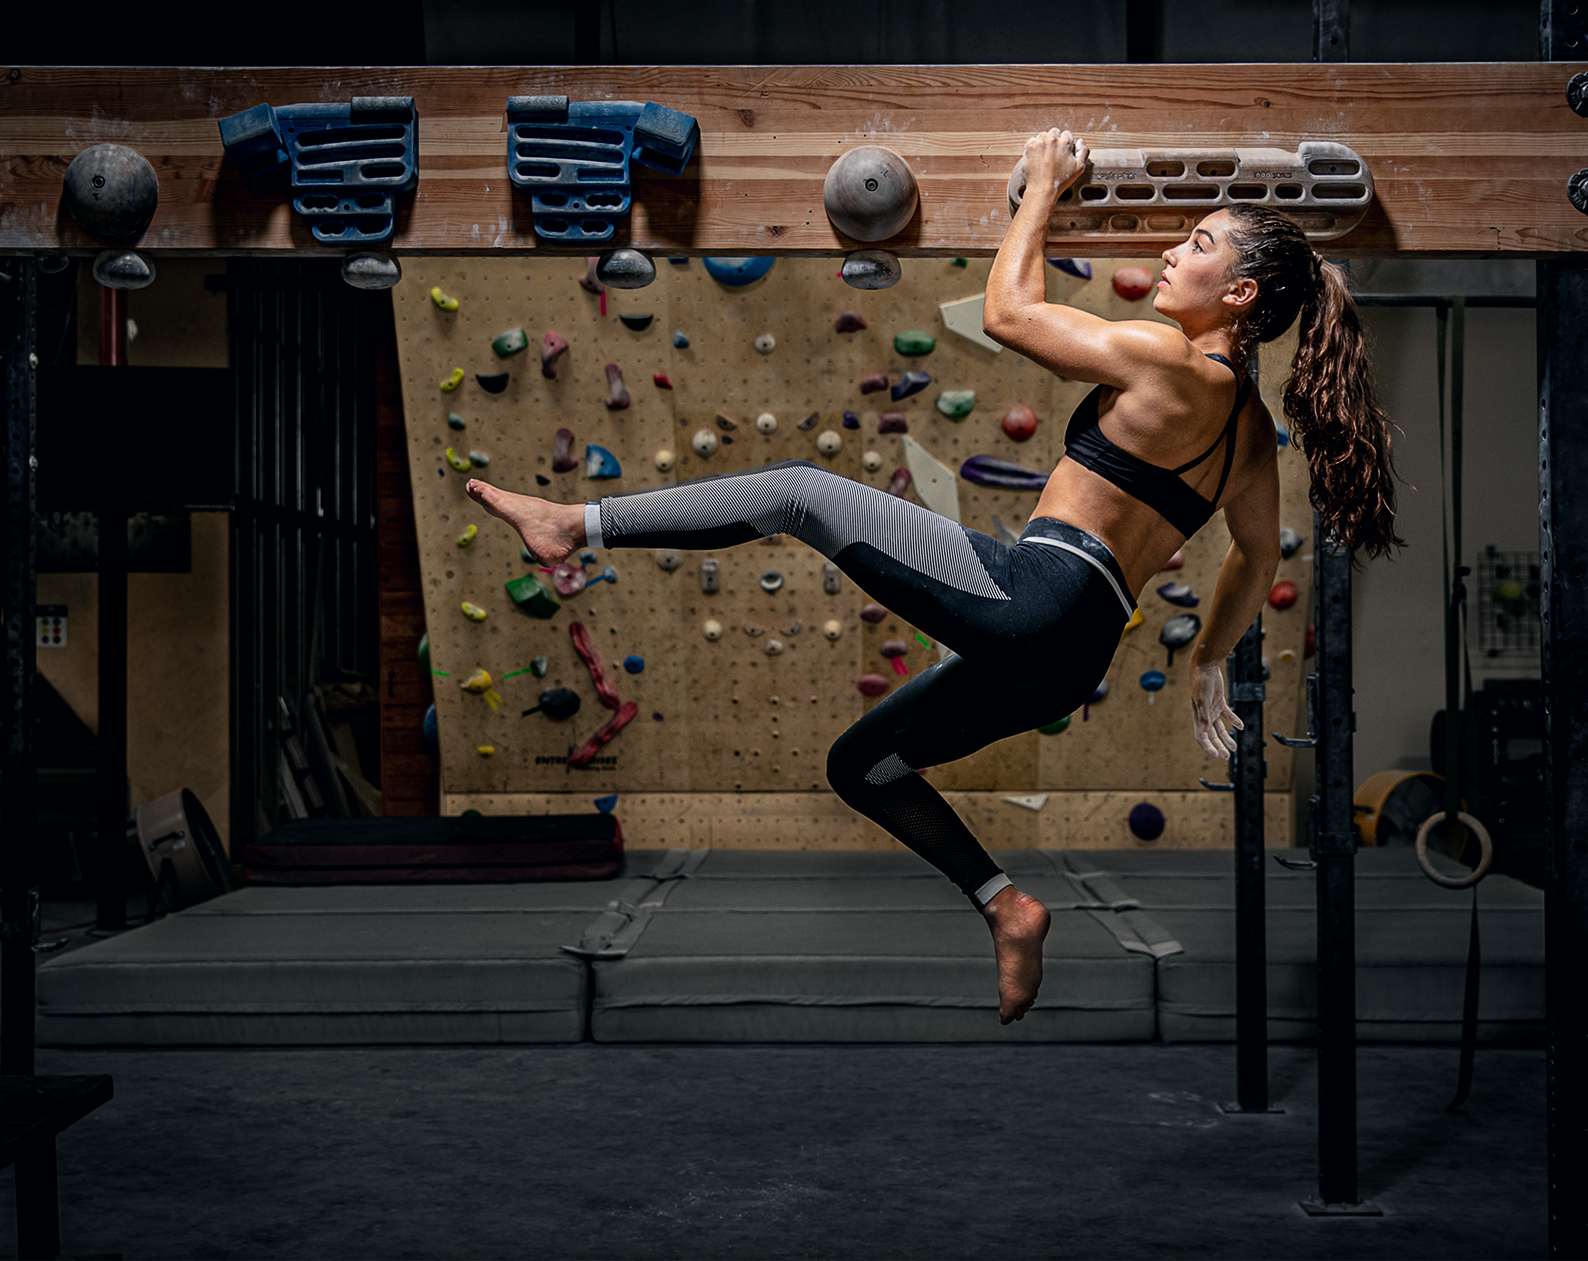 Oympic Climber Brooke Raboutou photographed for Southwest Airlines